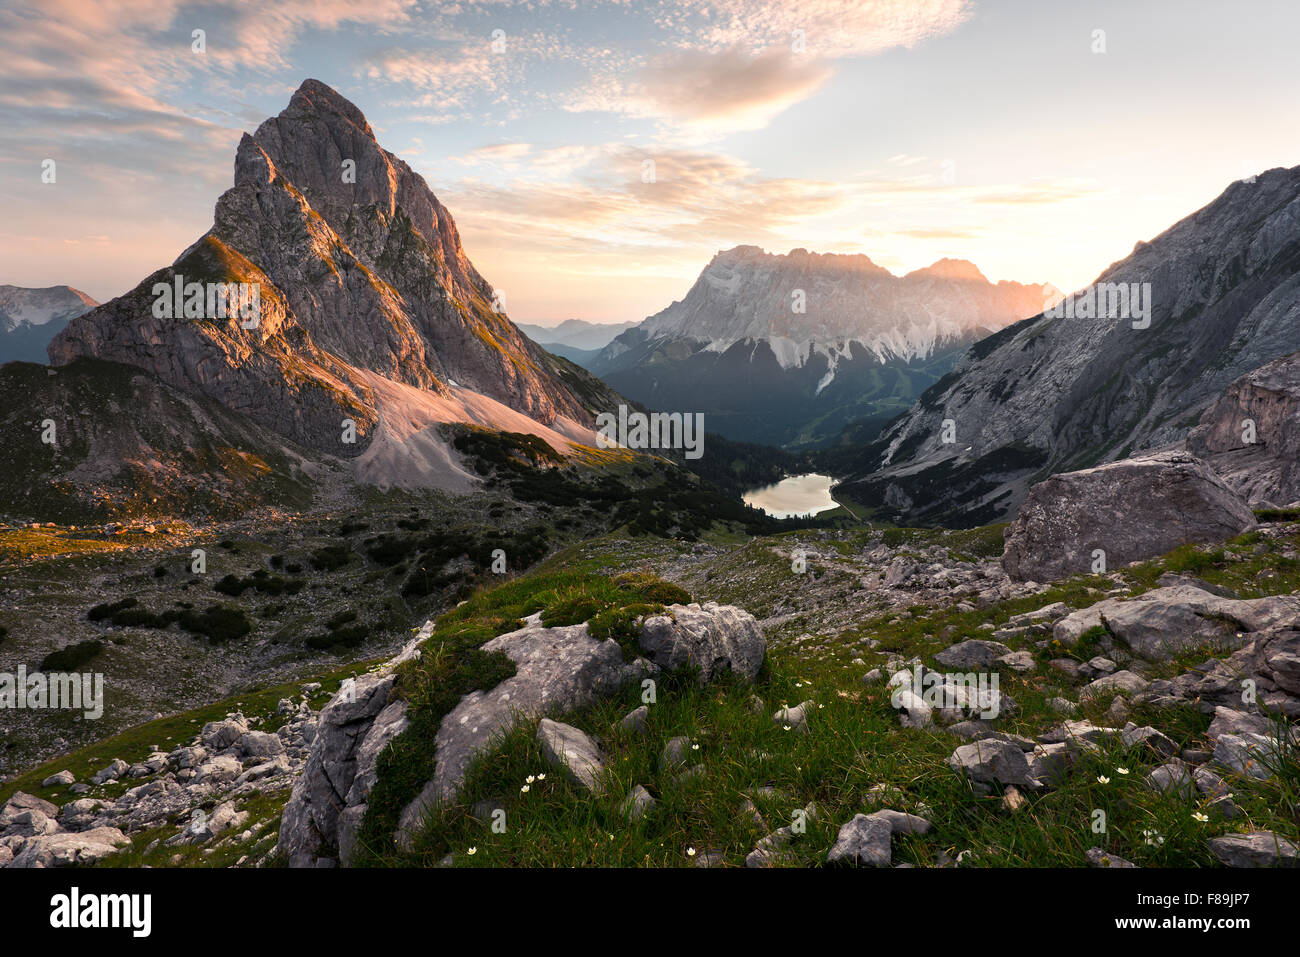 Seebensee with Zugspitze and Sonnenspitze, Wetterstein Mountains, Alps, Austria, Europe - Stock Image